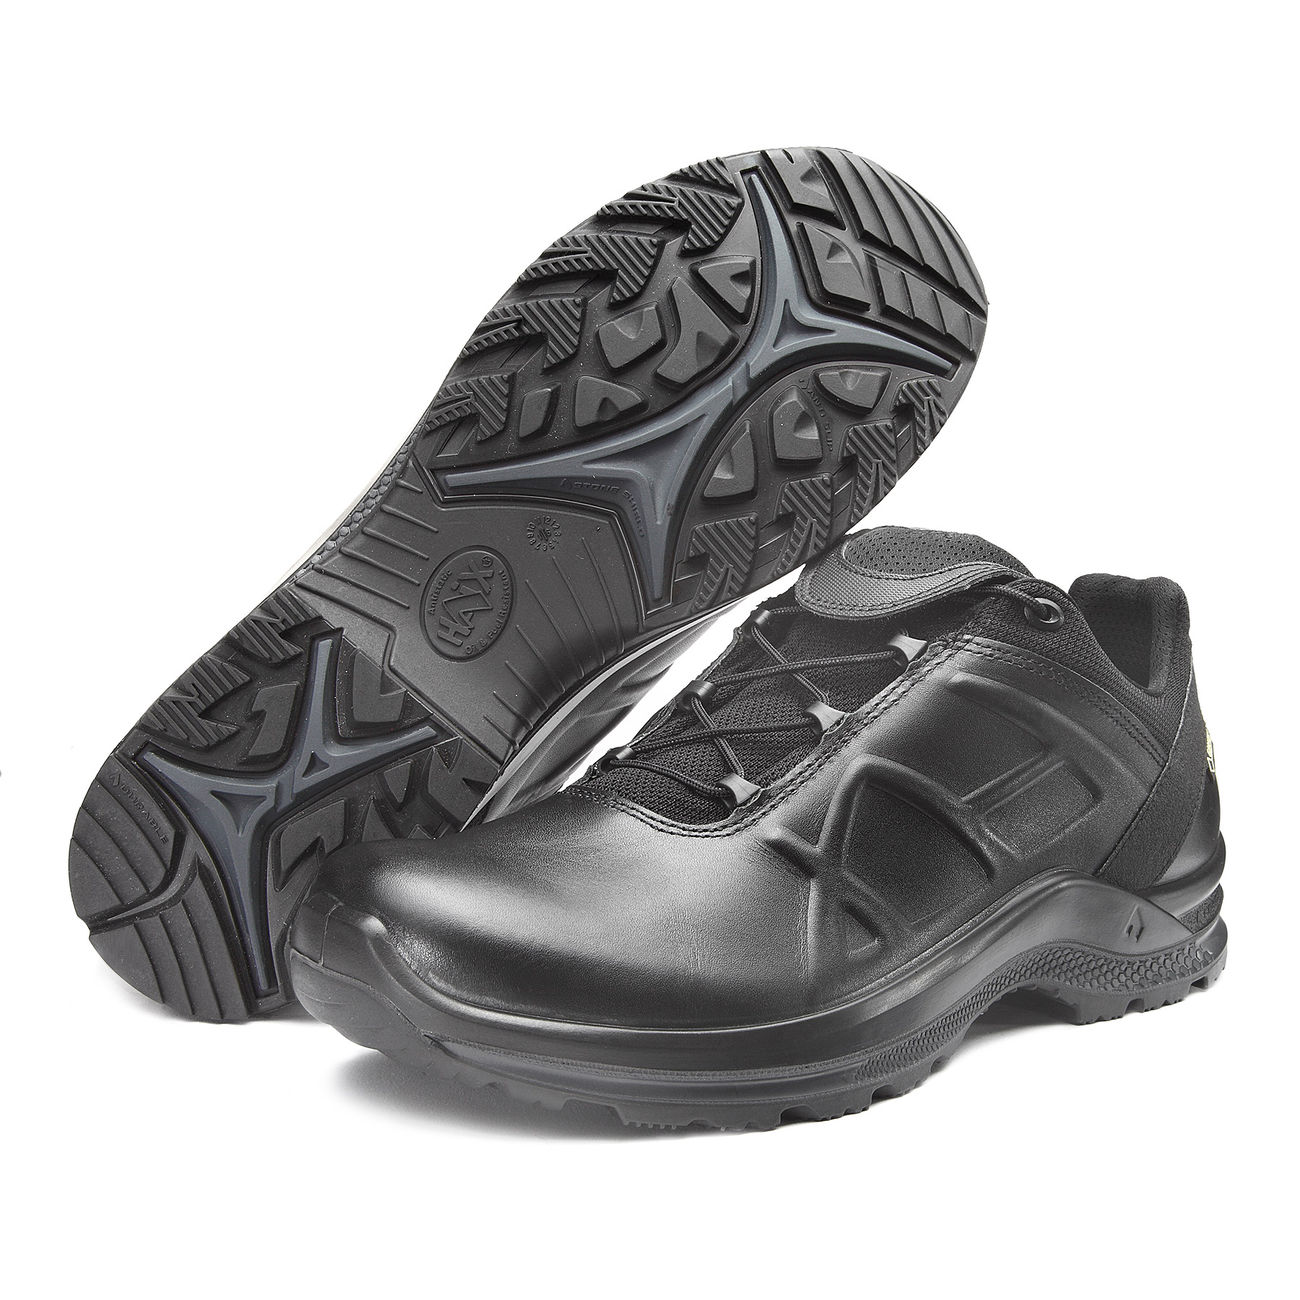 Haix Halbschuh Black Eagle Tactical 2.0 GTX Low schwarz 1